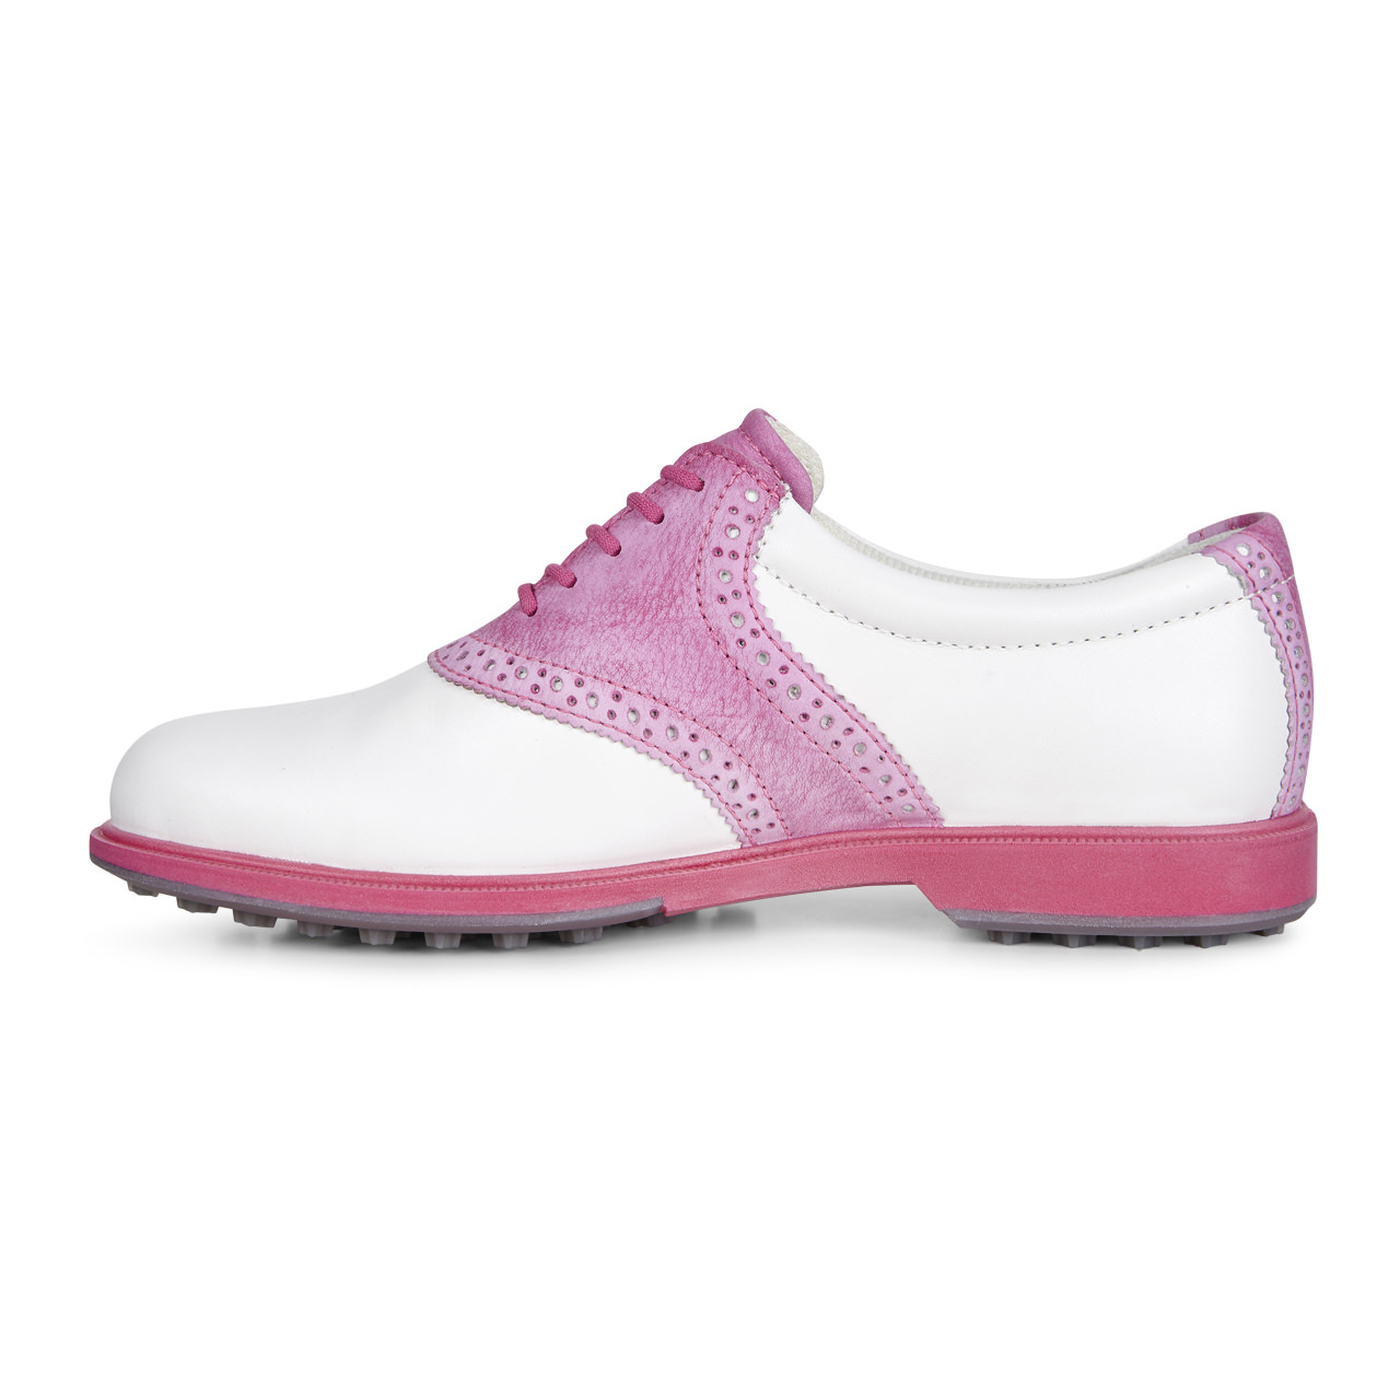 ECCO CLASSIC HYBRID II Golf Ladies